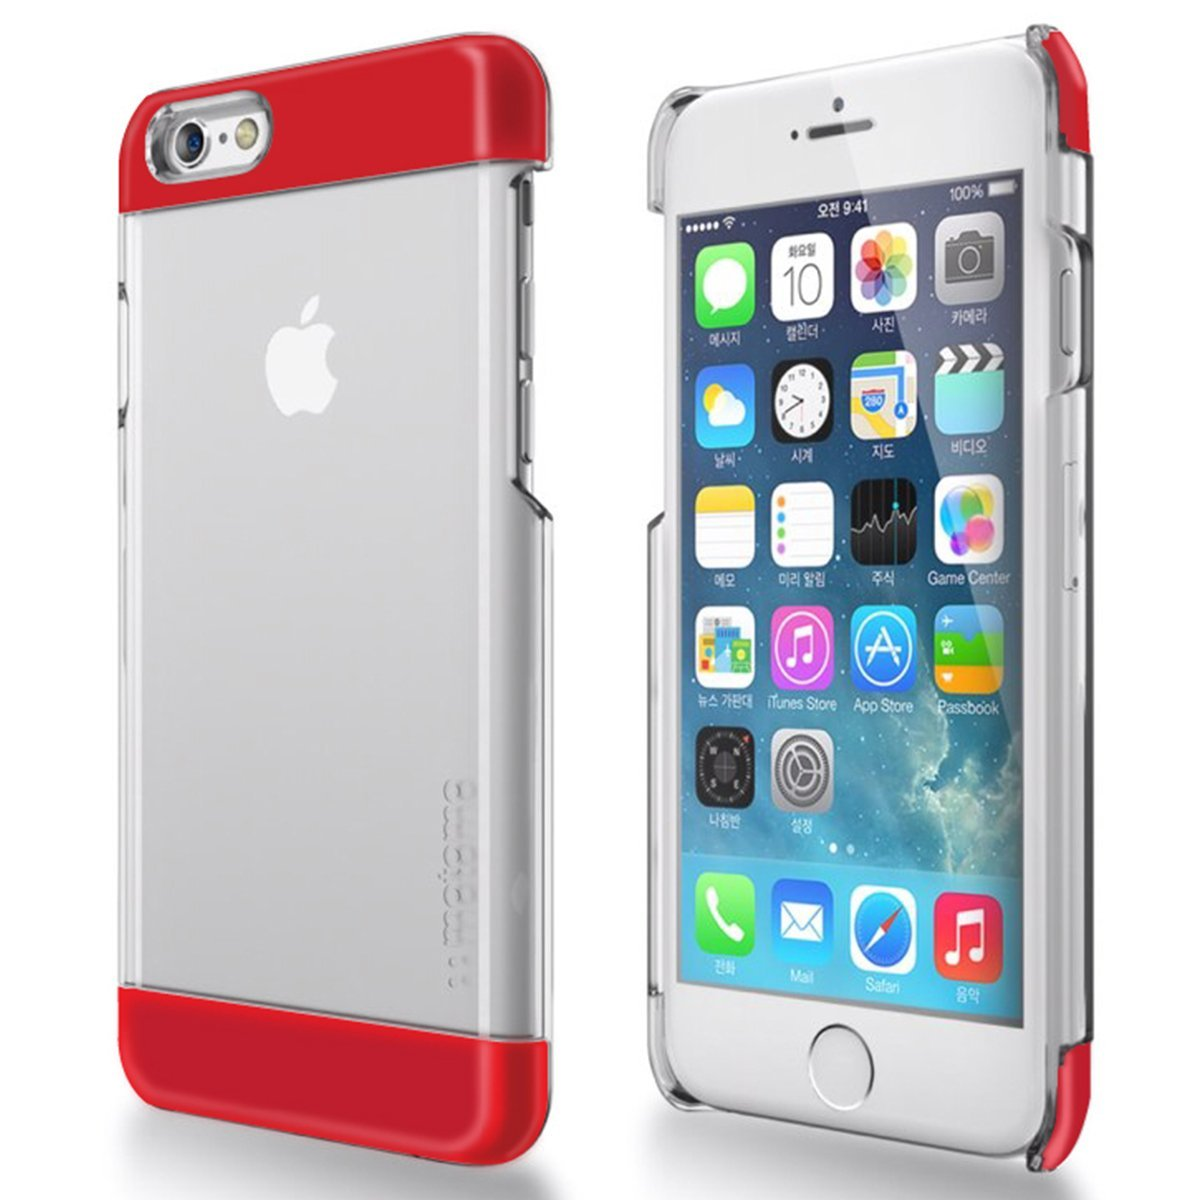 Made for Apple iPhone 6/ 6S Case,  [Red] INO Wing Series Slim Protective Crystal Glossy Snap-on Hard Polycarbonate Plastic Case Cover by Redshield